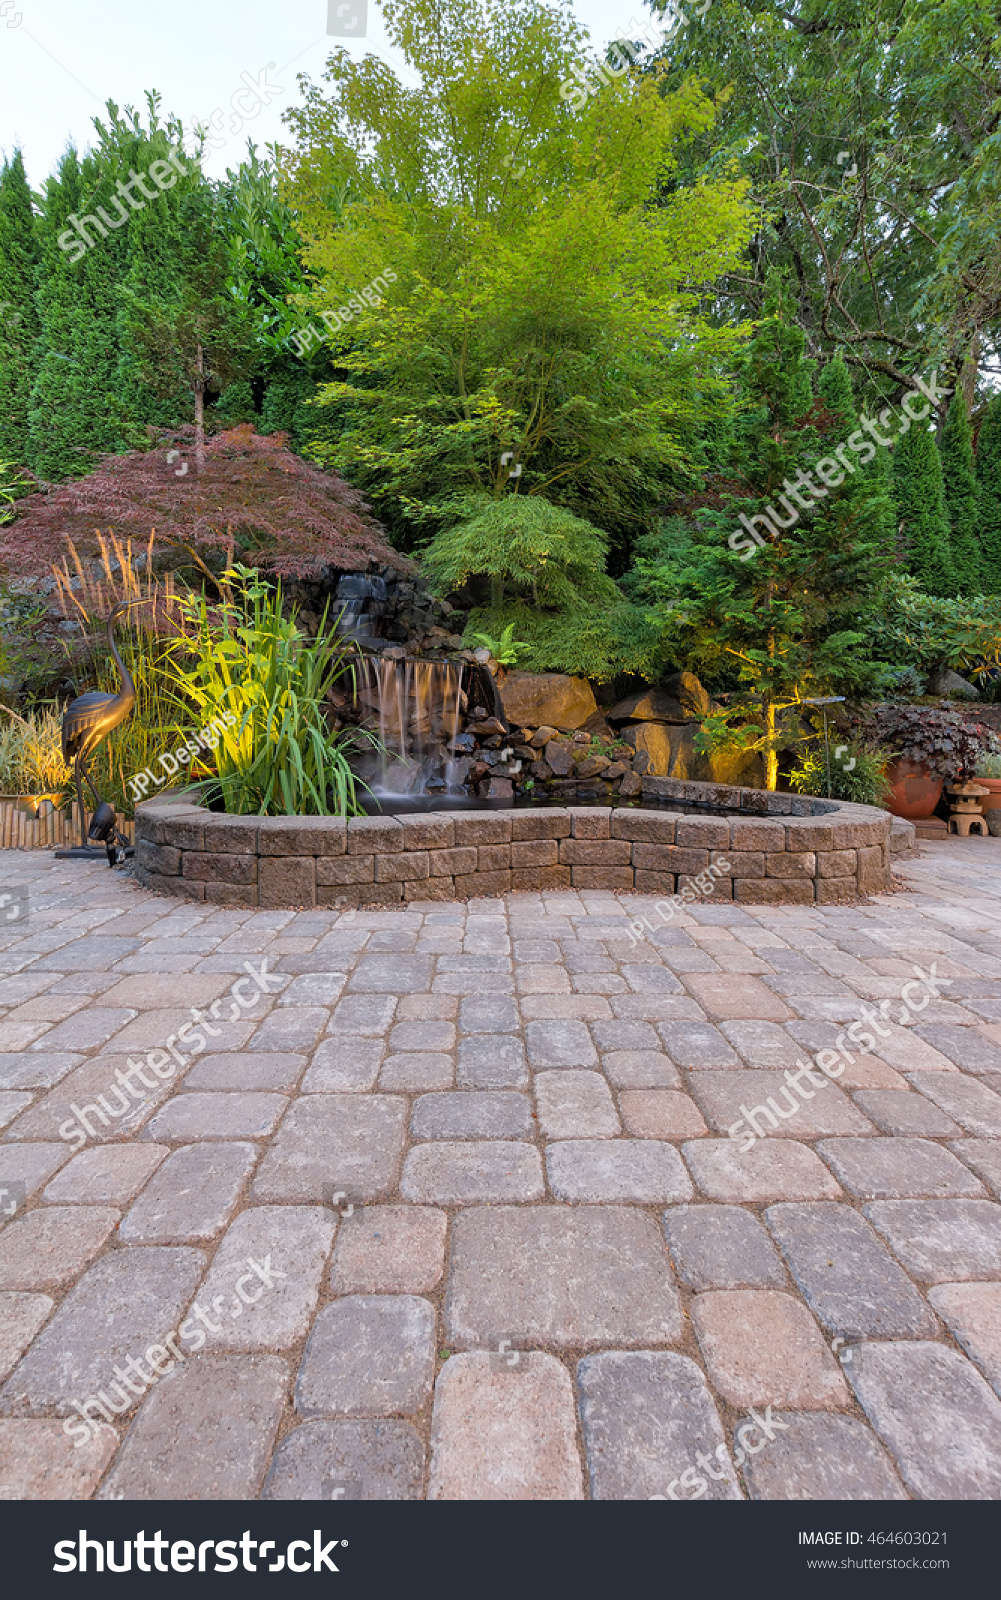 Backyard Garden Paver Brick Patio With Waterfall Pond And Landscaping